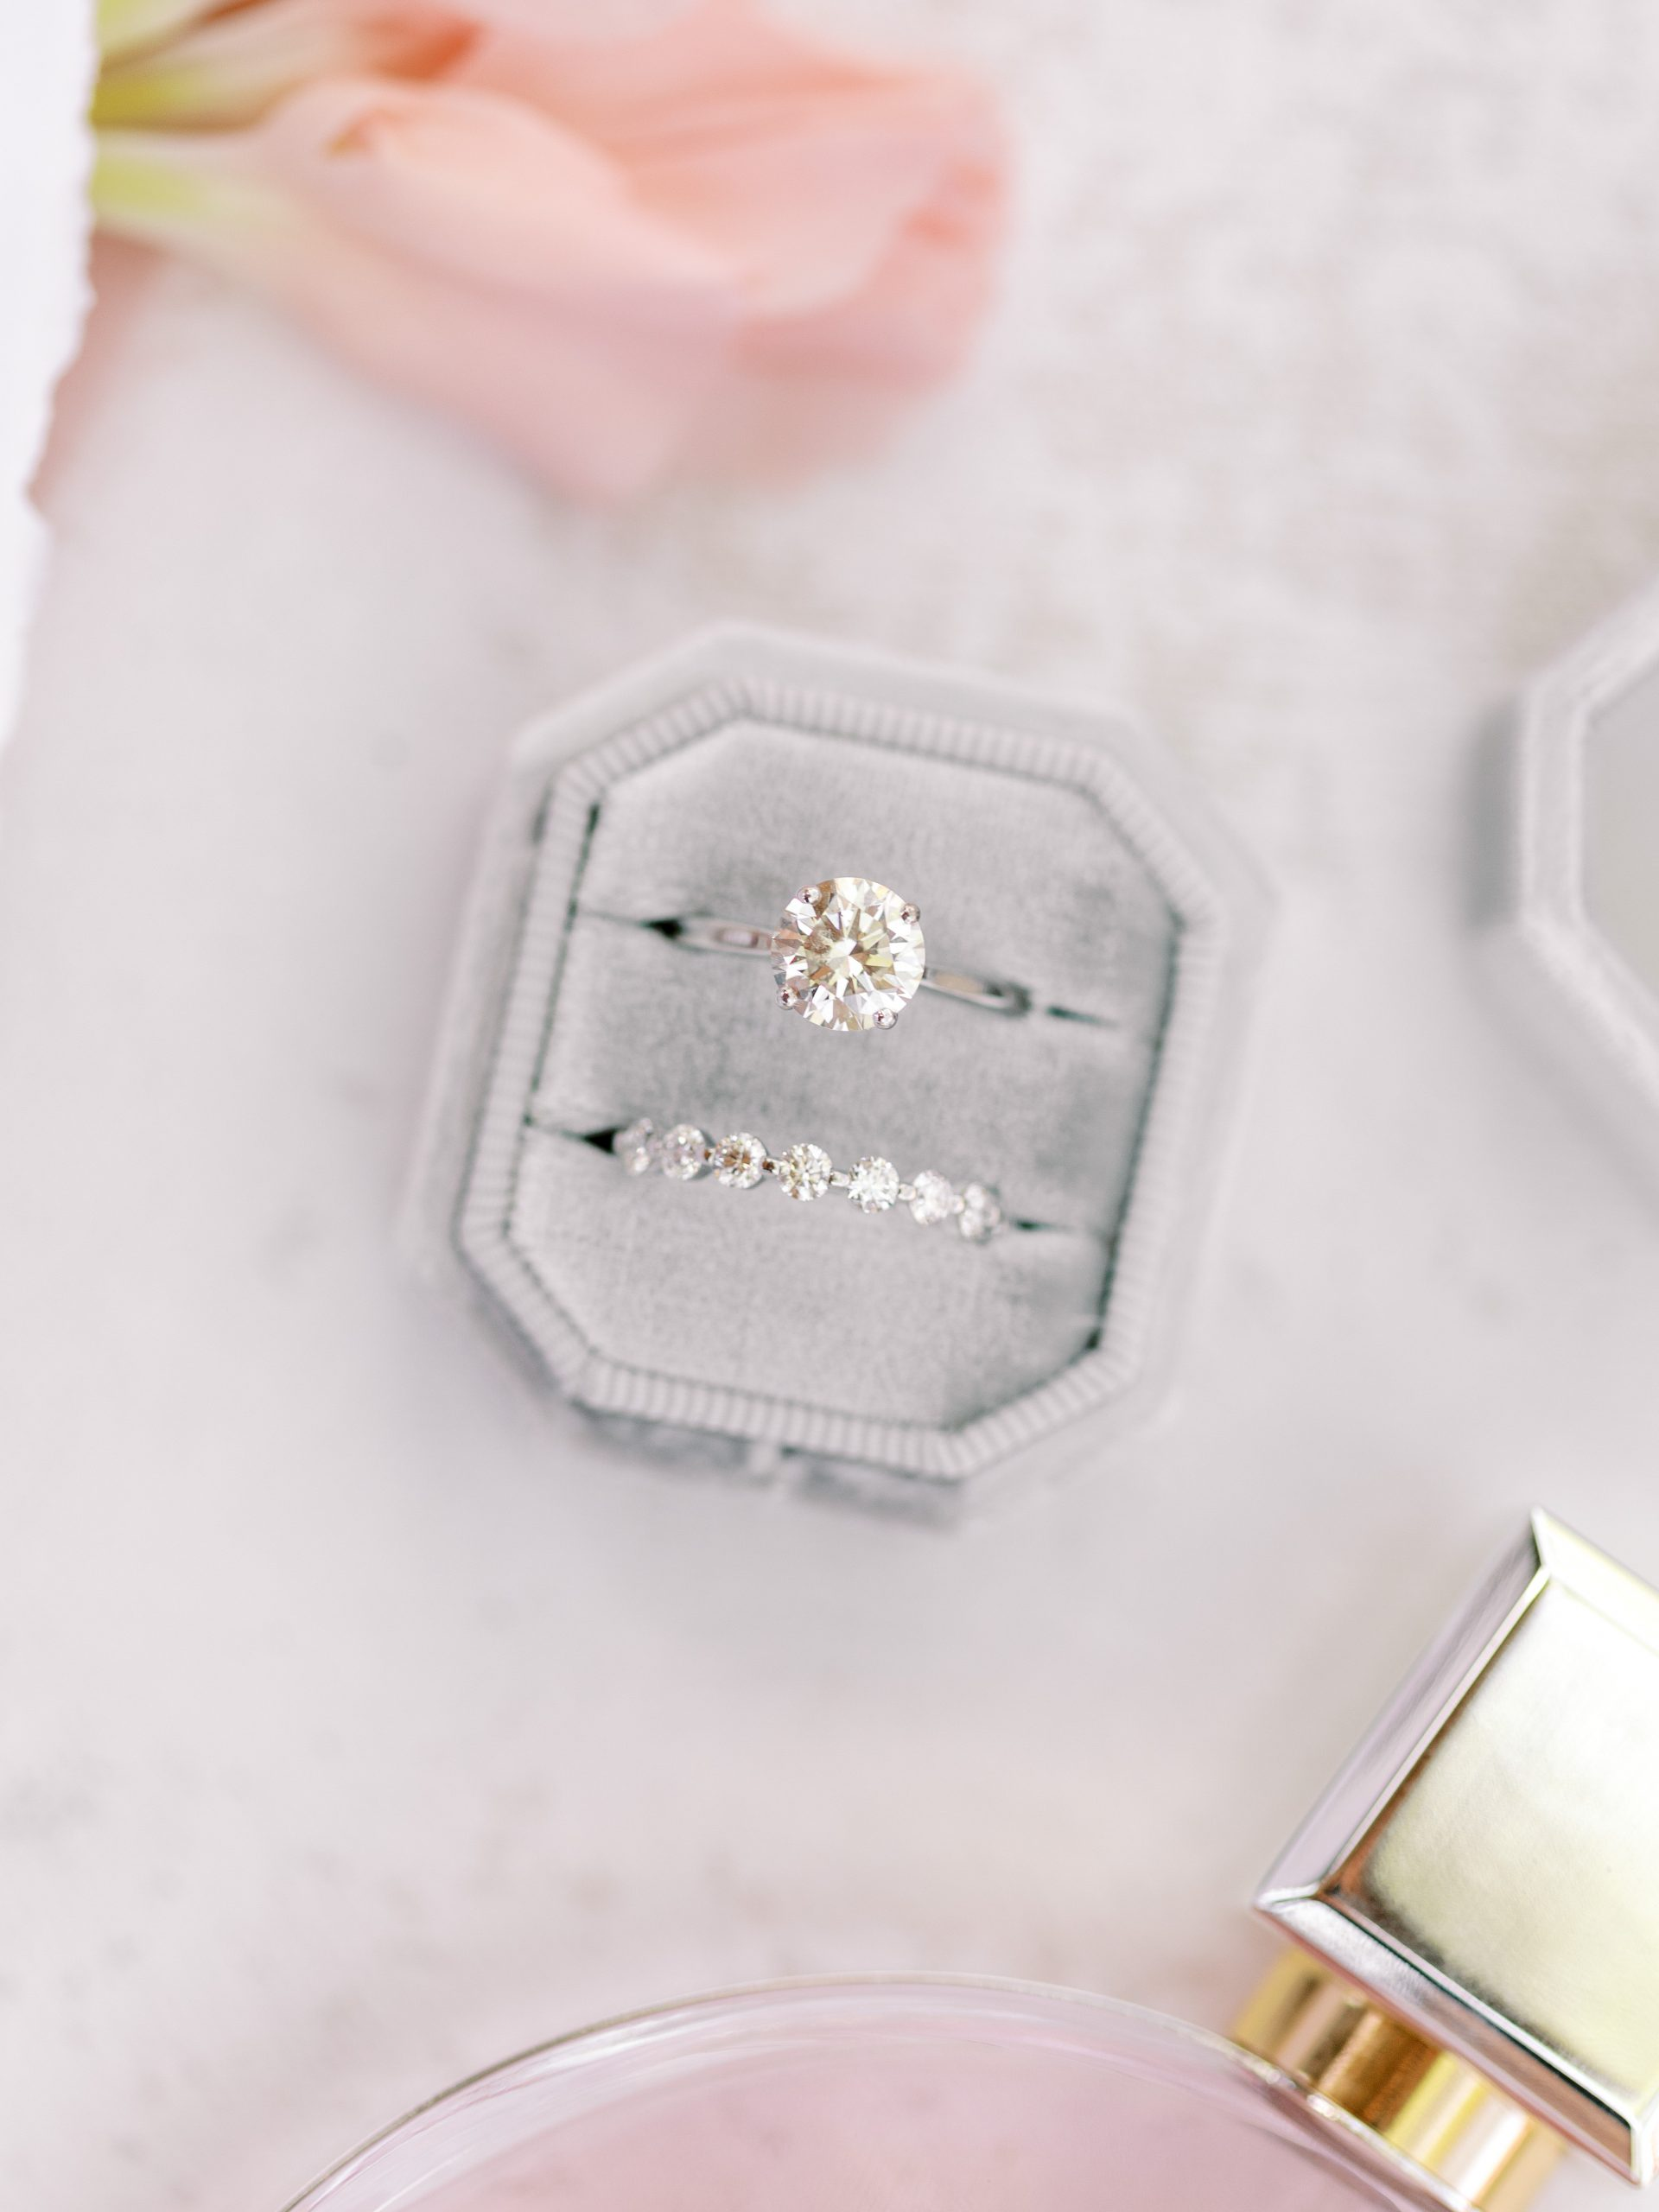 Engagement ring and wedding band in a gray Mrs. Box